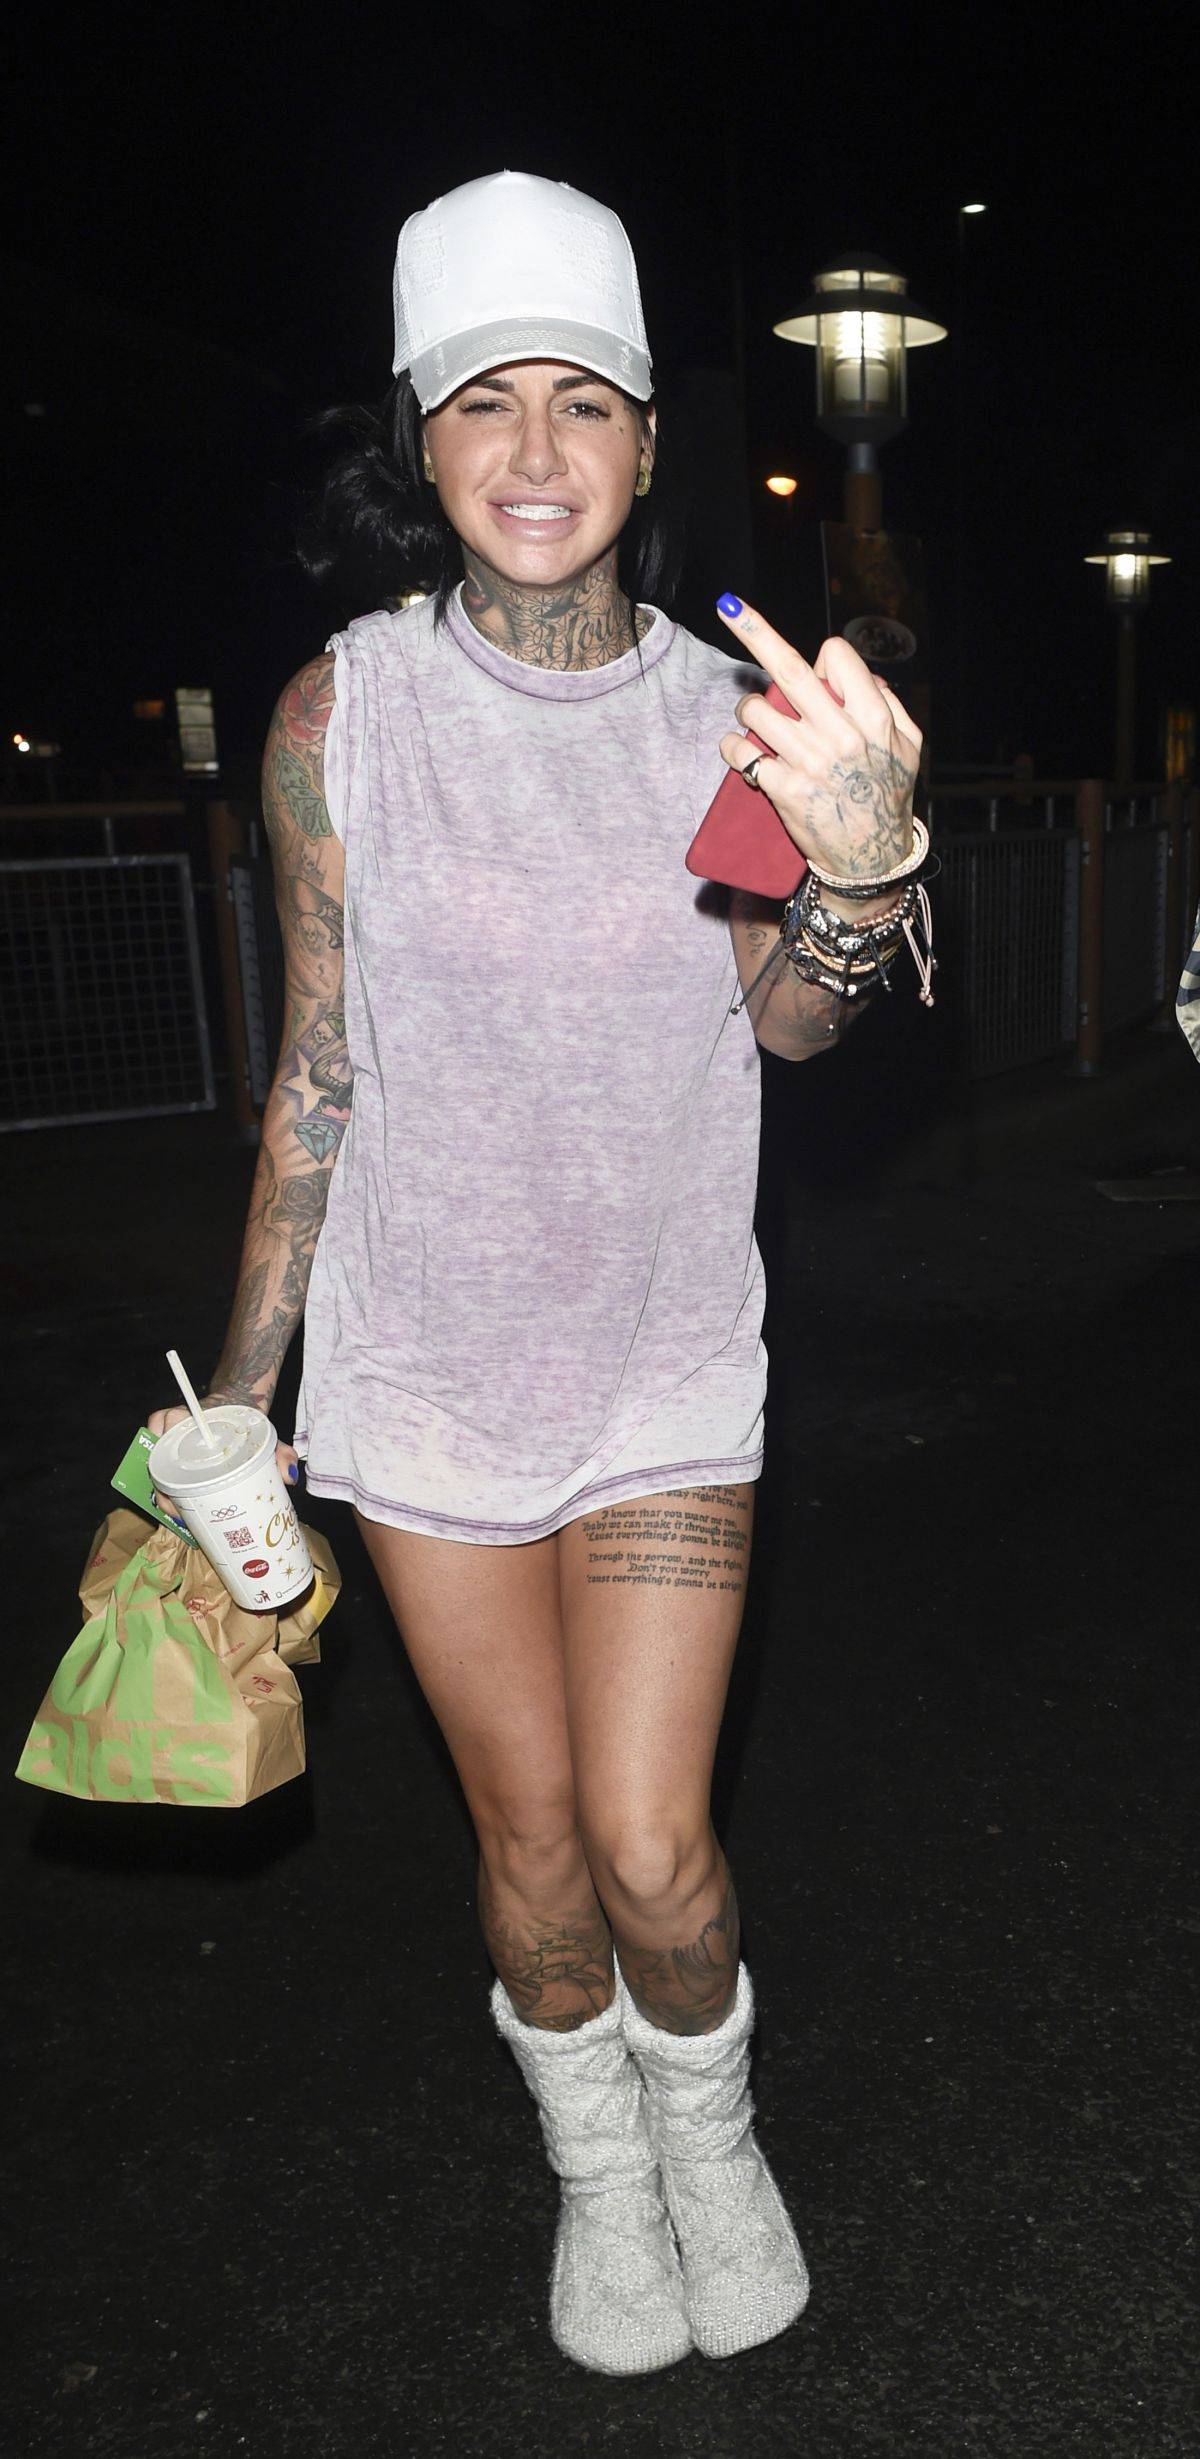 JEMMA LUCY at McDonalds in Manchester 01/01/2017